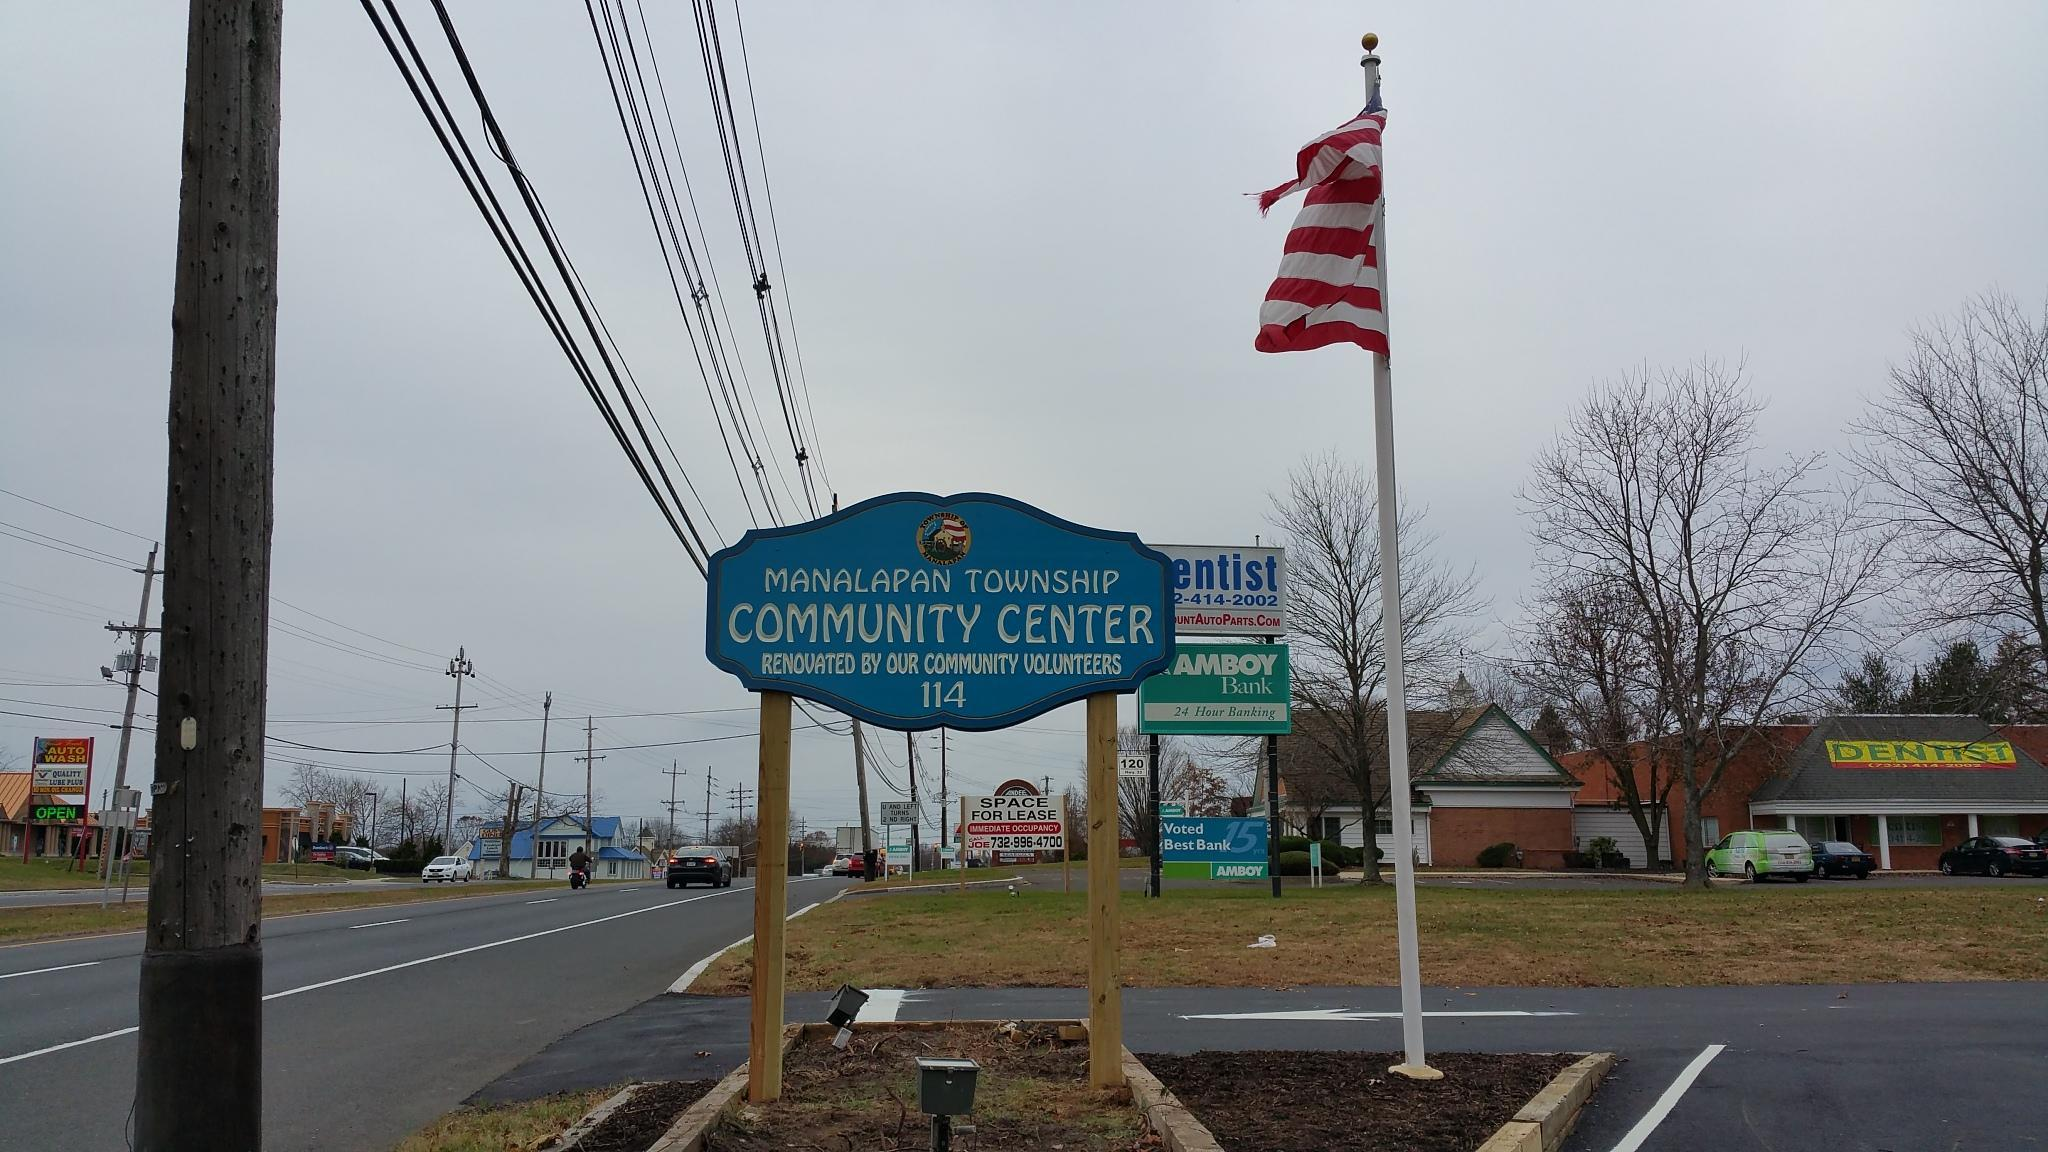 community center manalapan township